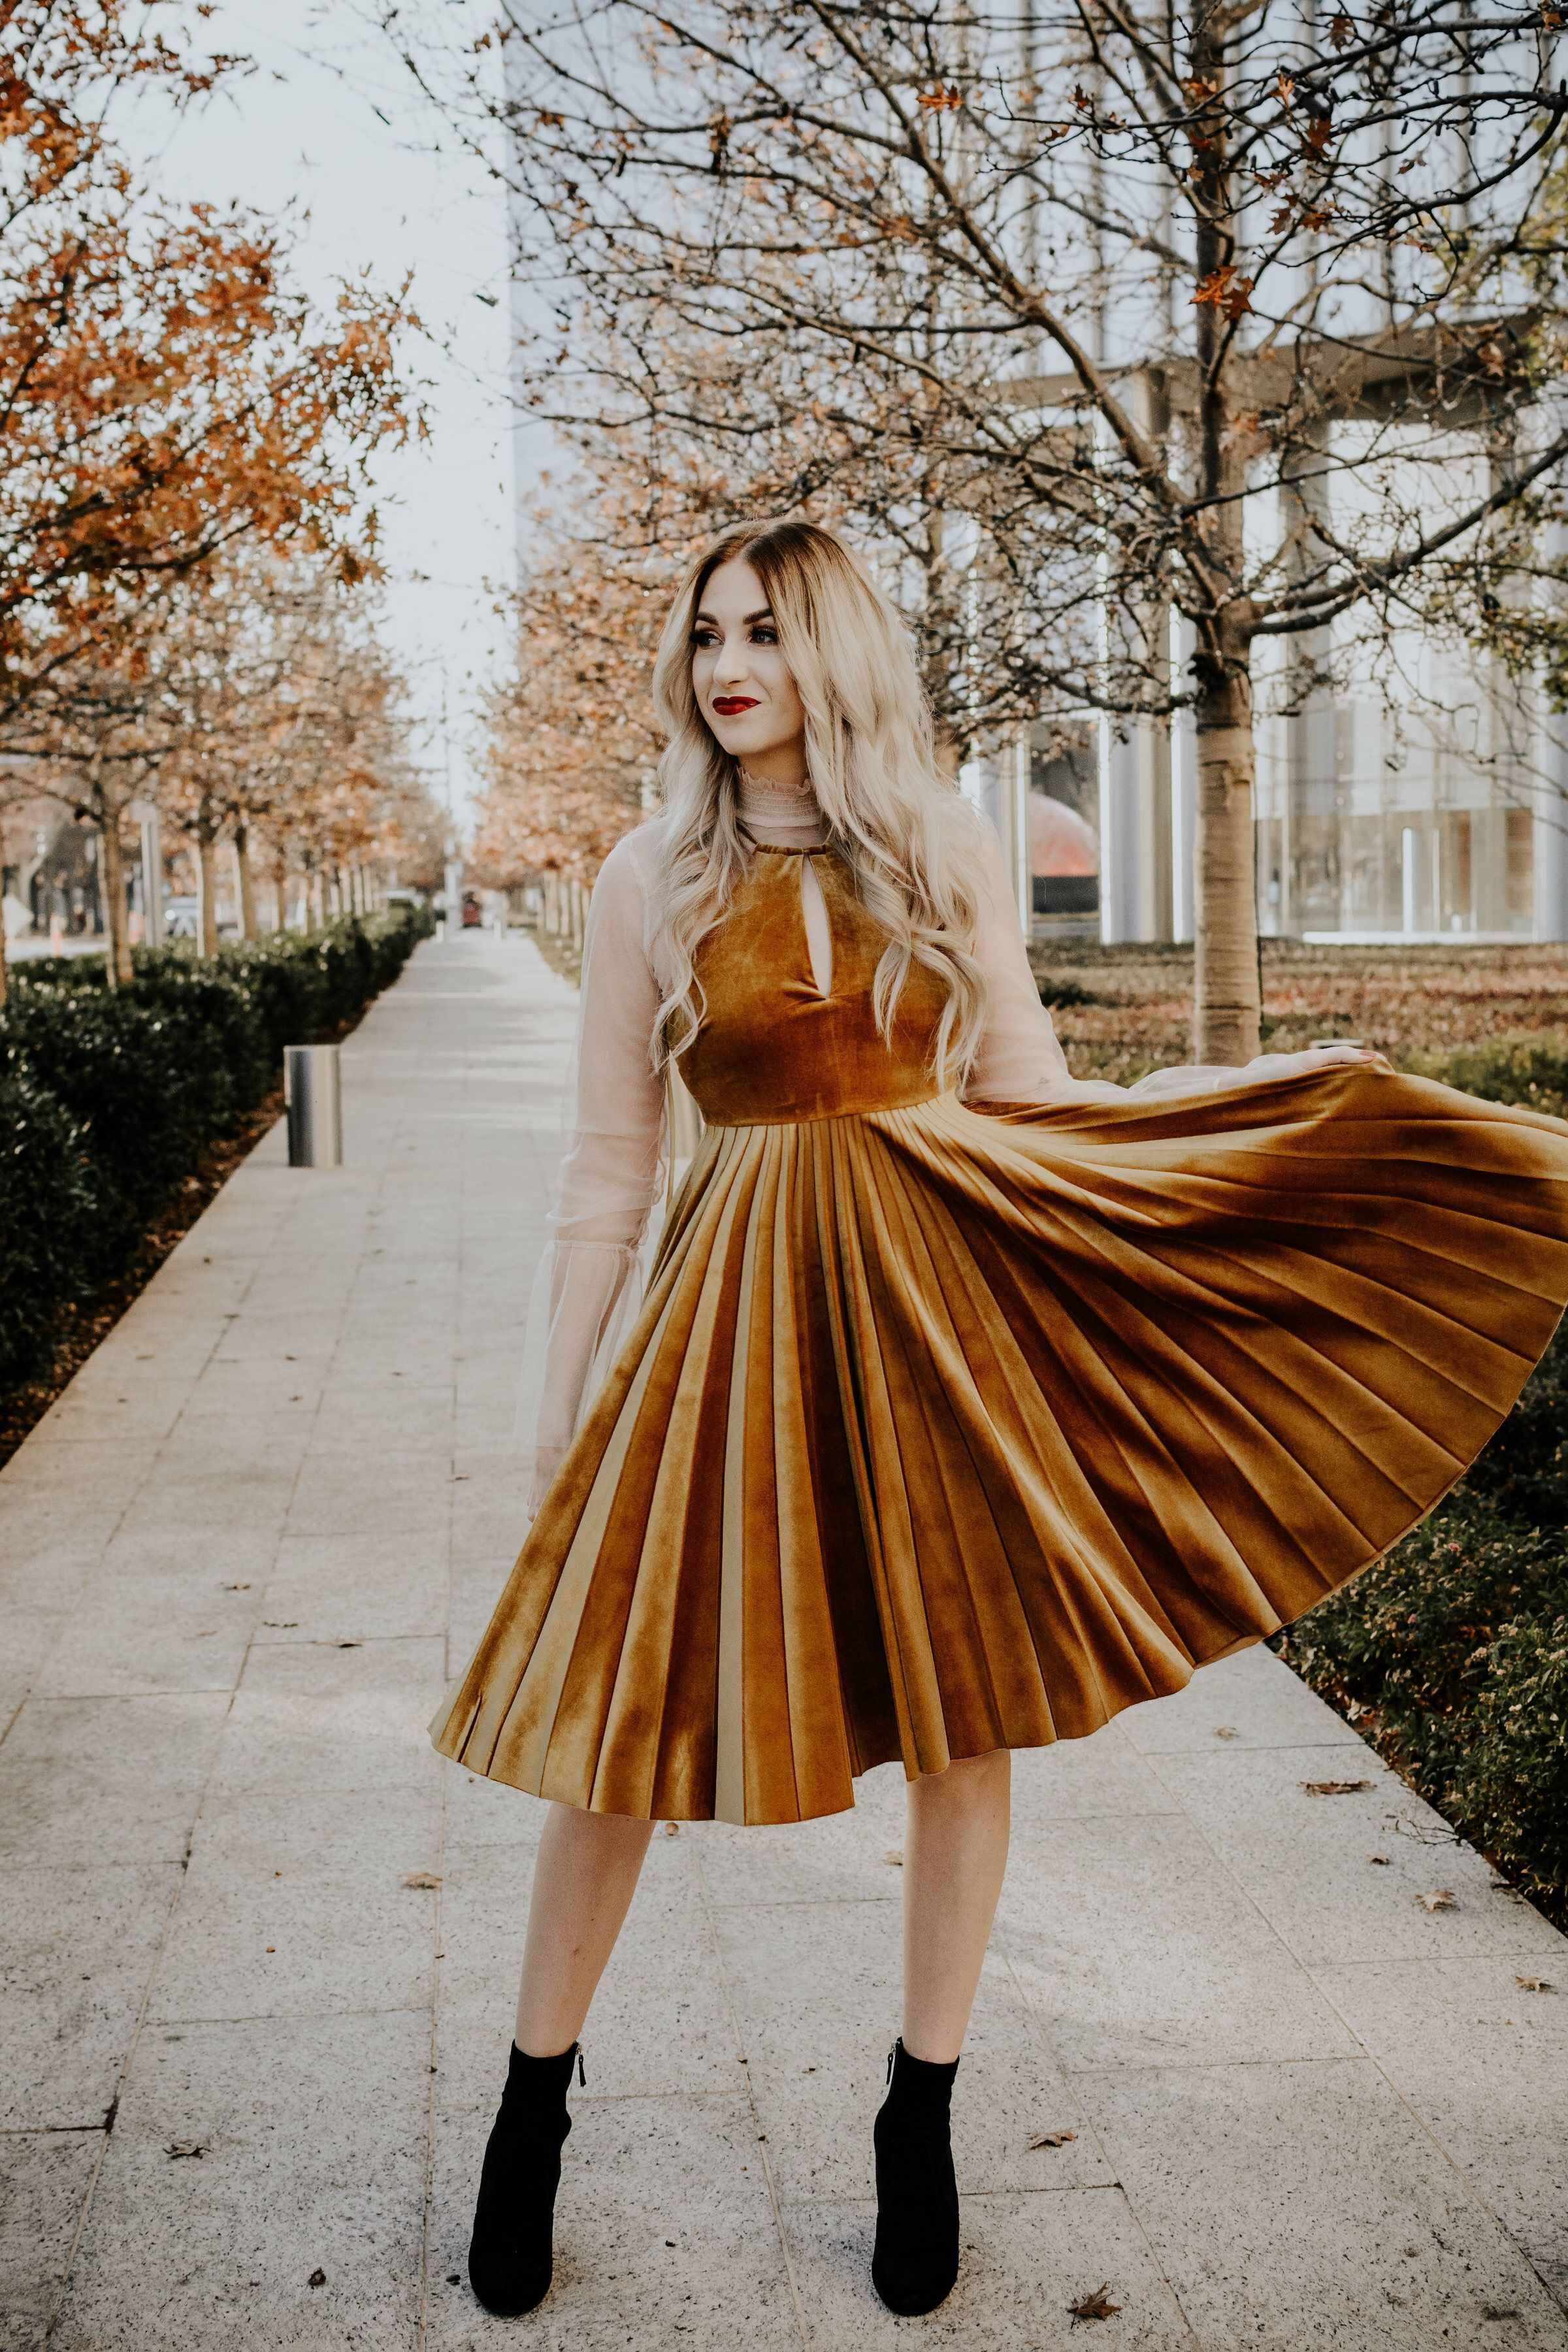 The Perfect Day To Night Dress Sass Satin Wedding Guest Outfit Winter Wedding Guest Outfit Fall Wedding Guest Outfit [ 3600 x 2400 Pixel ]